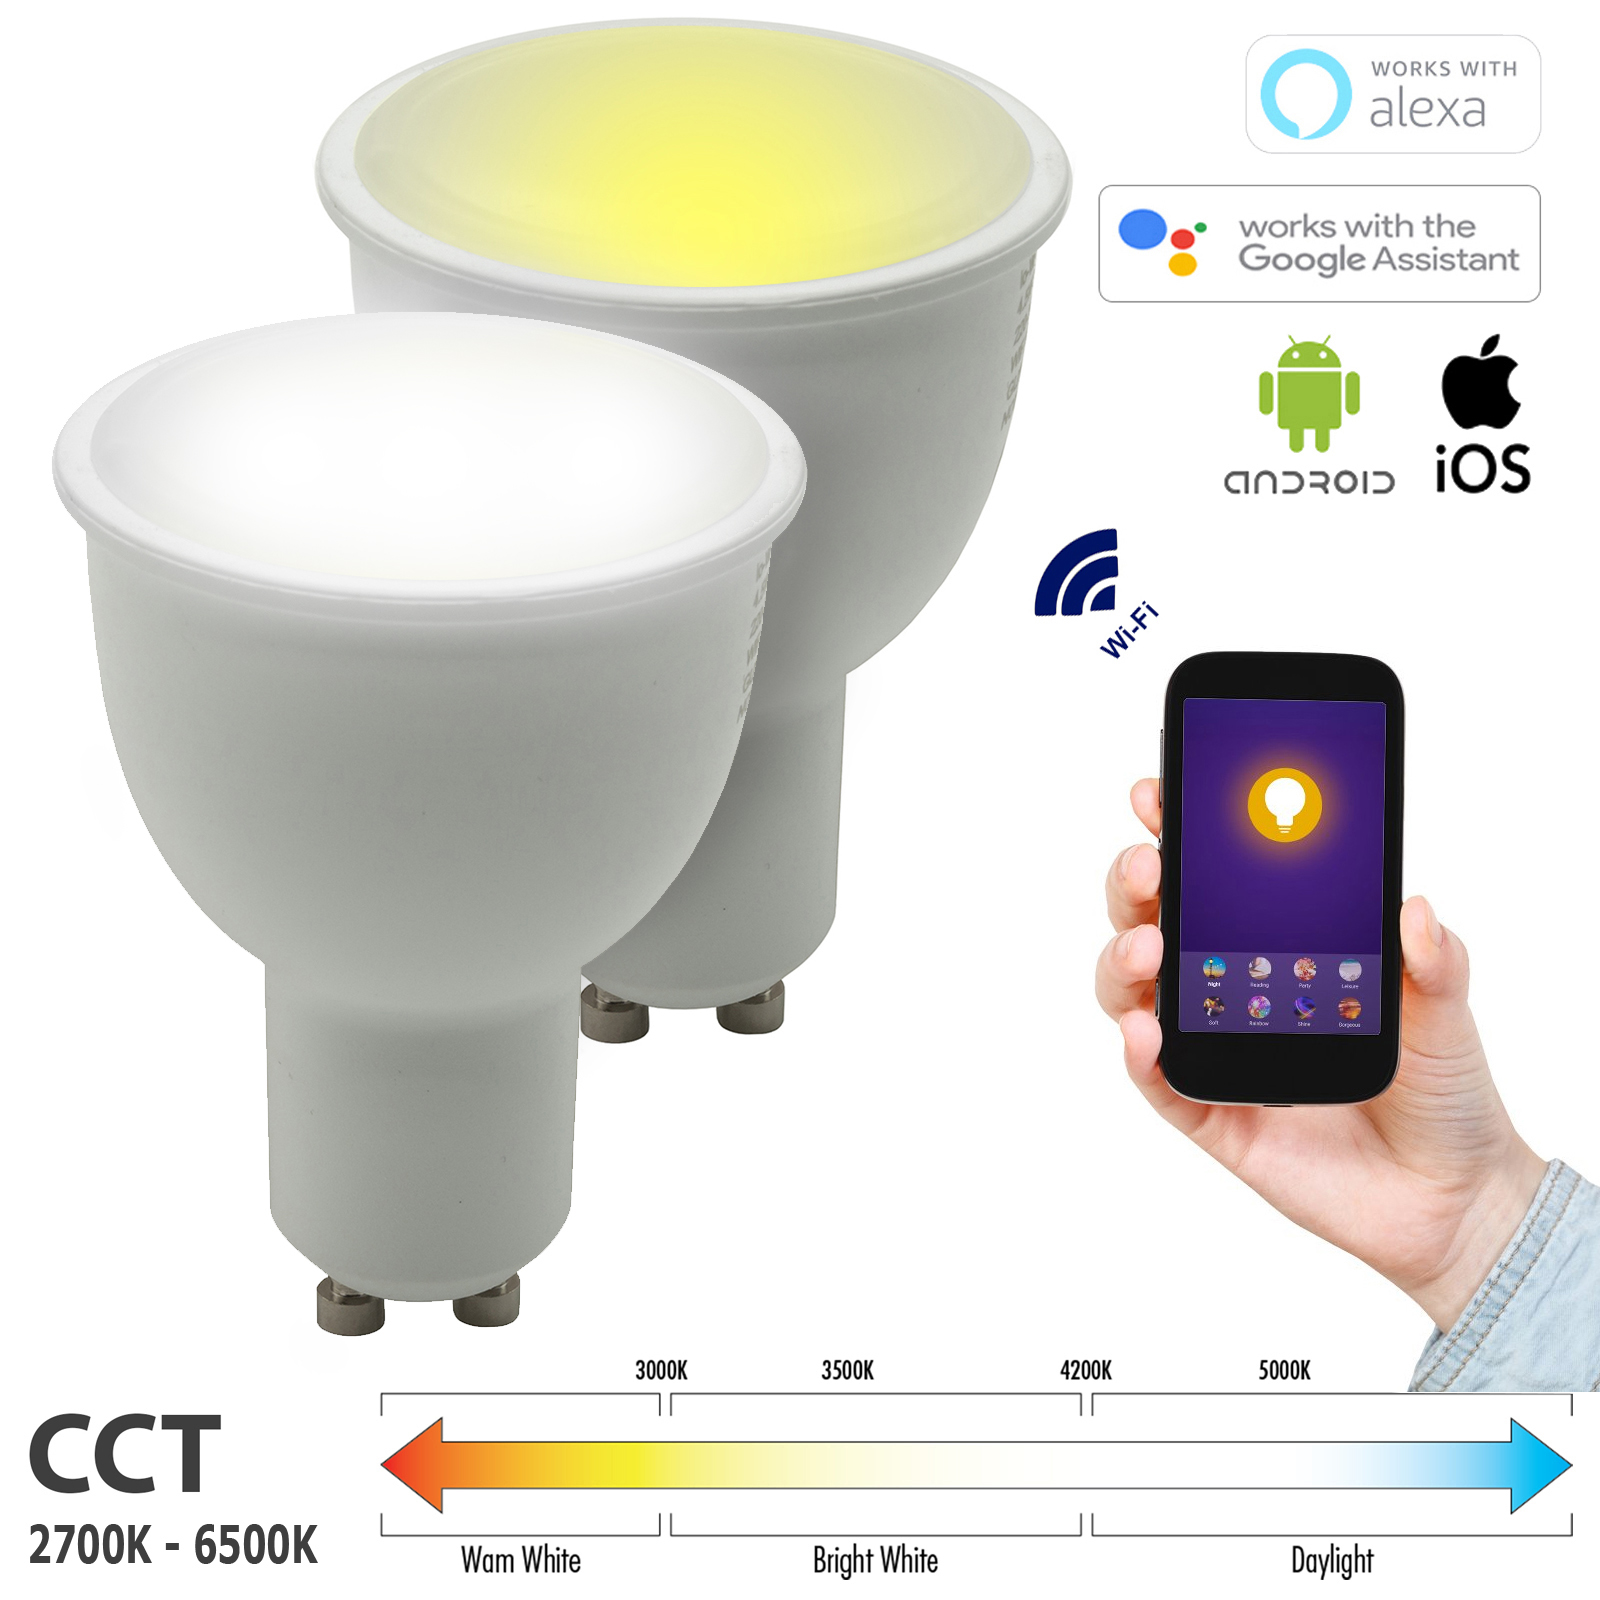 KIt WiFi SMART BULB 2pcs LED spotlights GU10 CCT from 2700K to 6500K 9W does not require HUB lamp compatible to Alexa, Google Home IFTTT Android smartphone iOS